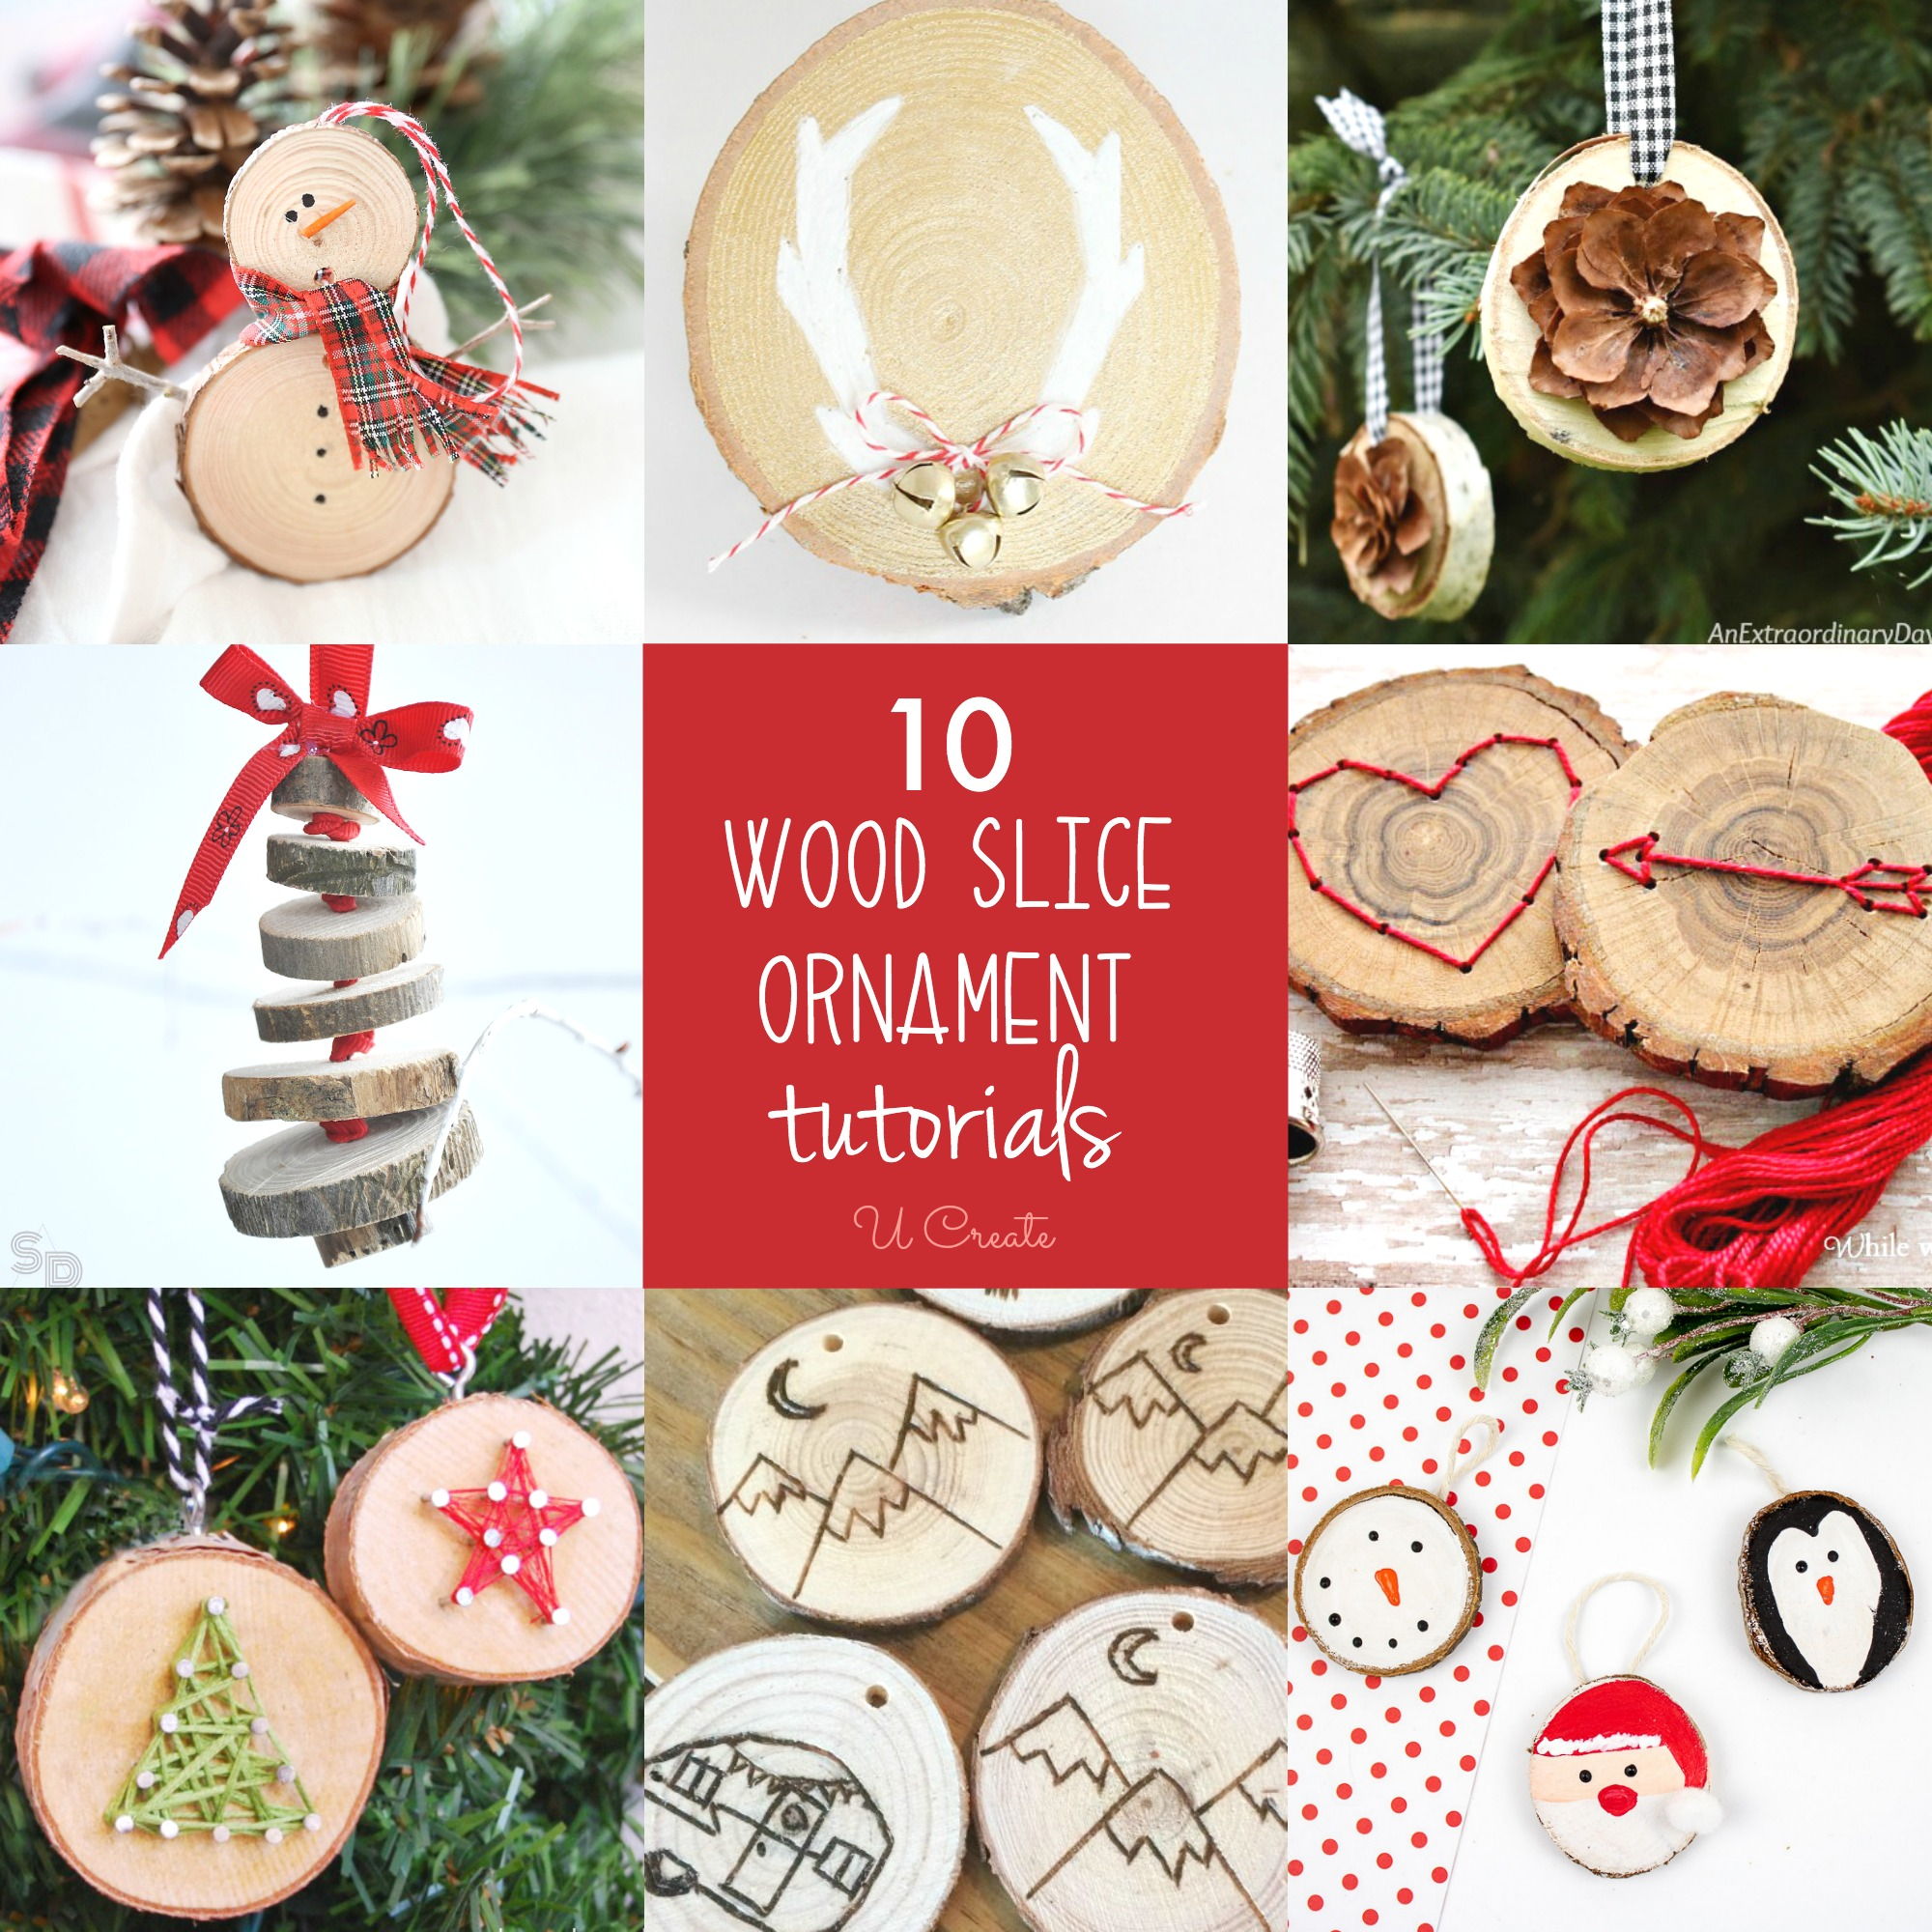 10 DIY Wood Slice Ornaments